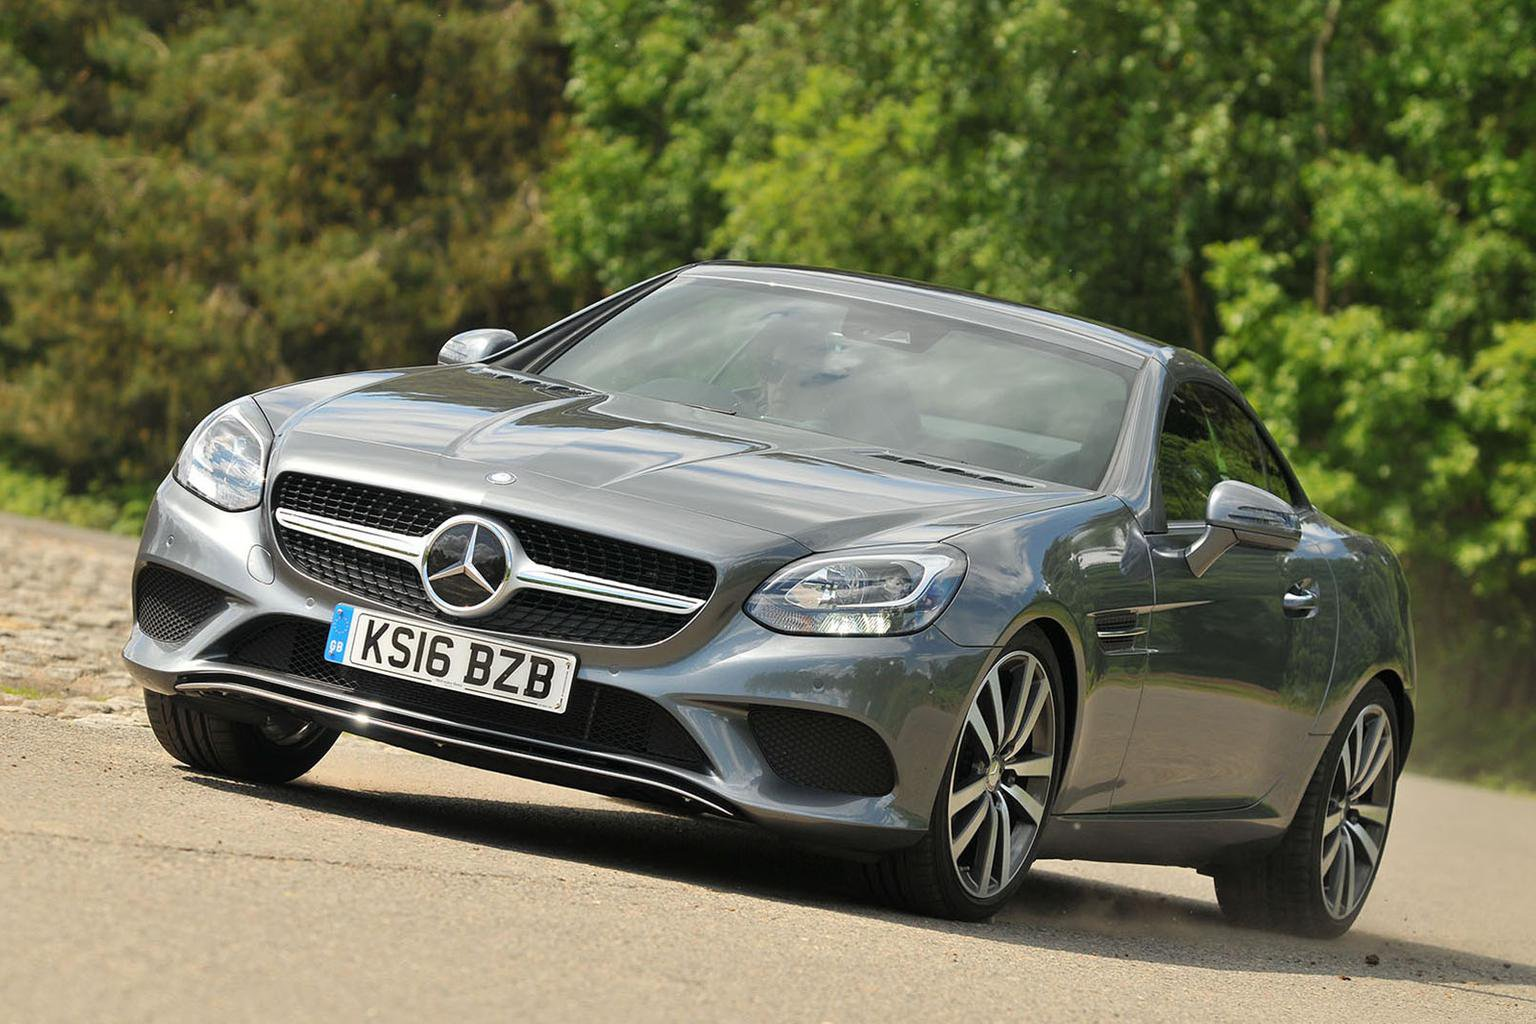 Audi TT Roadster vs Mercedes-Benz SLC